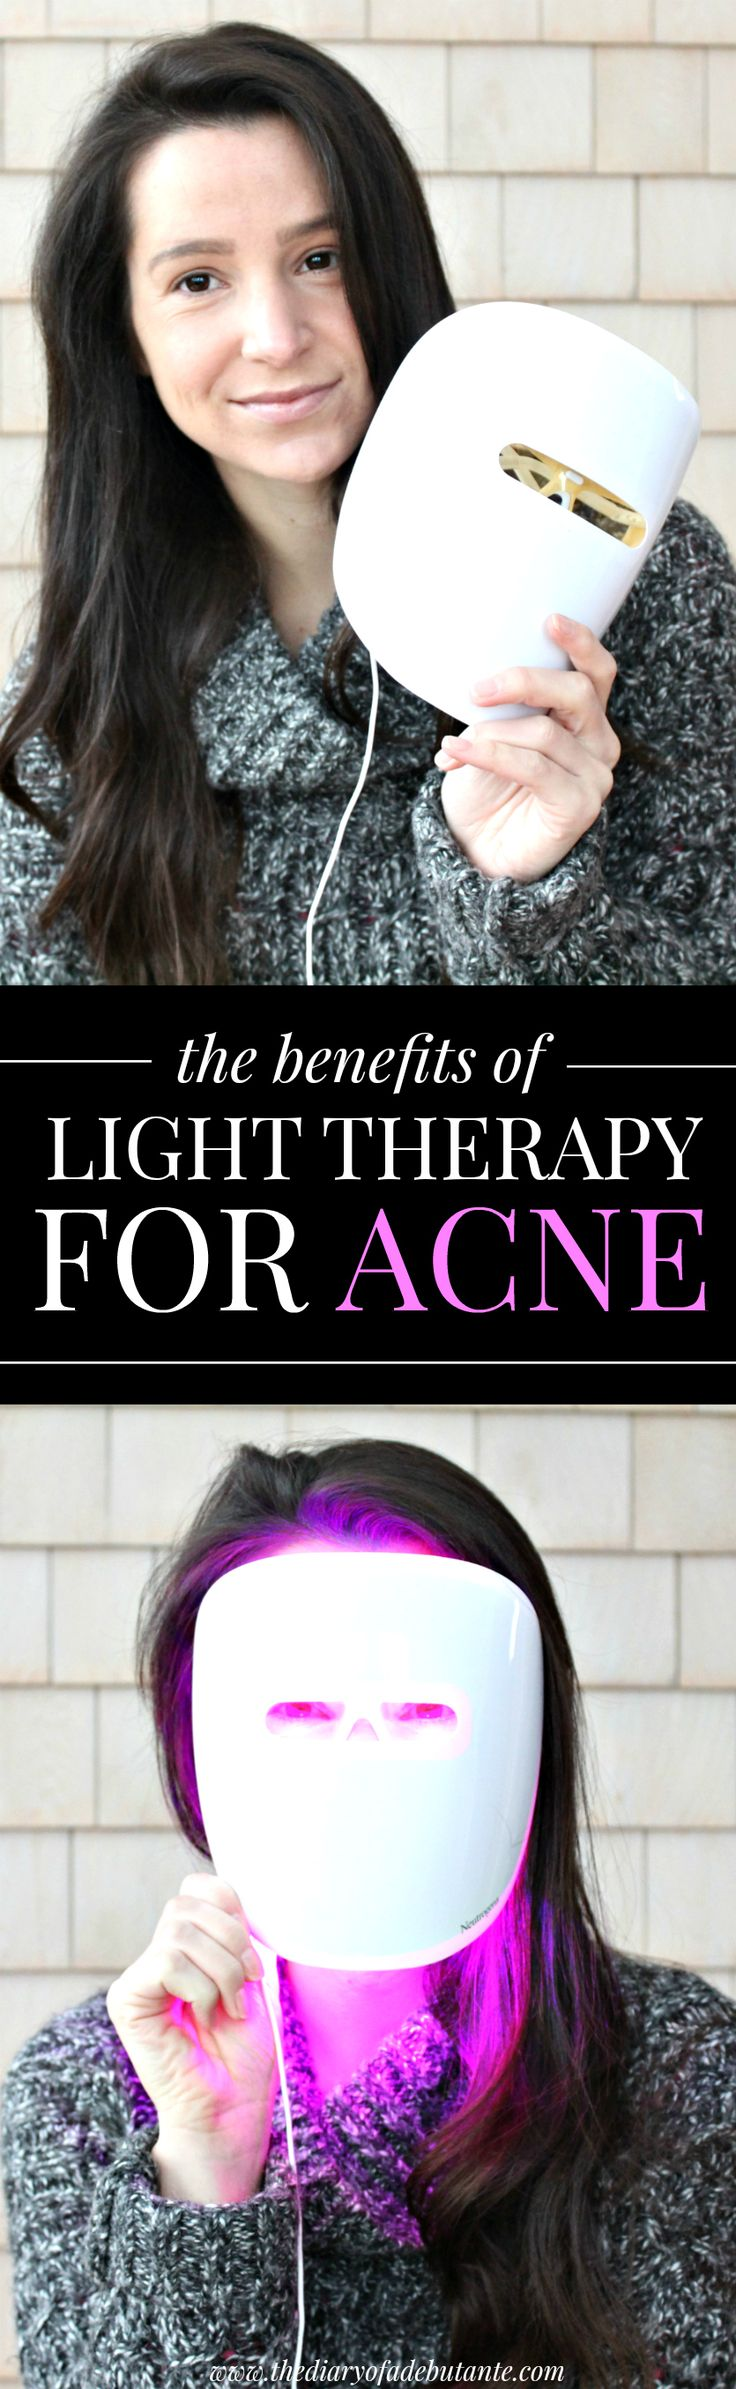 If you've ever considered using light therapy to treat acne, this post is a must read! She shares her experience using Neutrogena's new Light Therapy Acne Mask for 30 days.